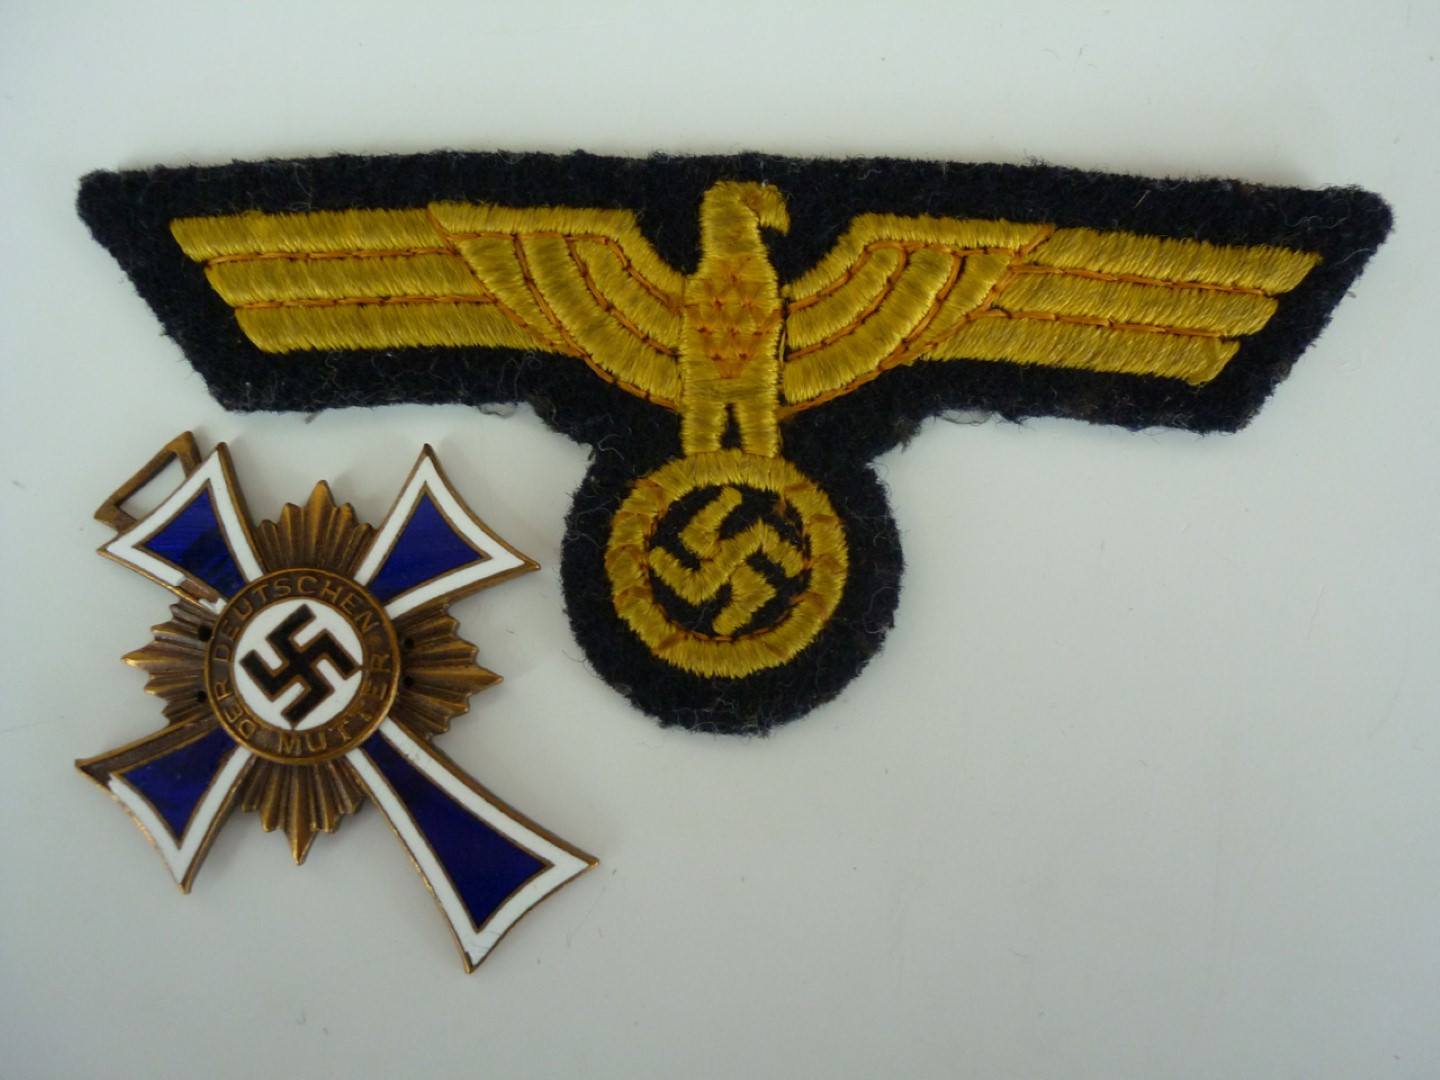 Lot 76 - A Kriegsmarine national emblem and a German Third Reich Mother's Cross in bronze